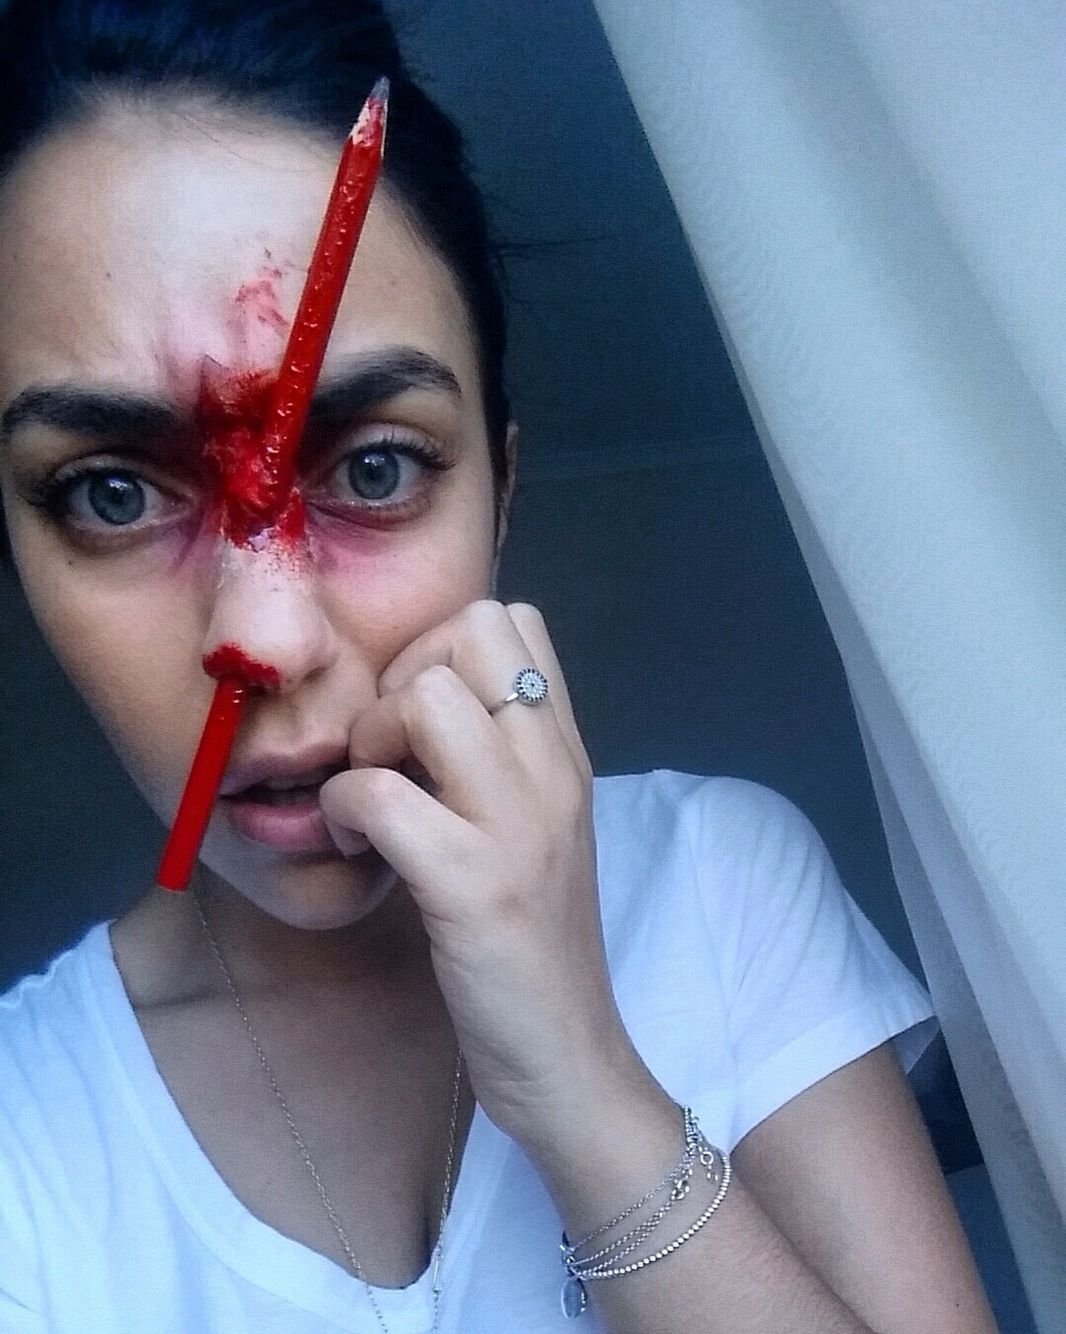 Special effects makeup need